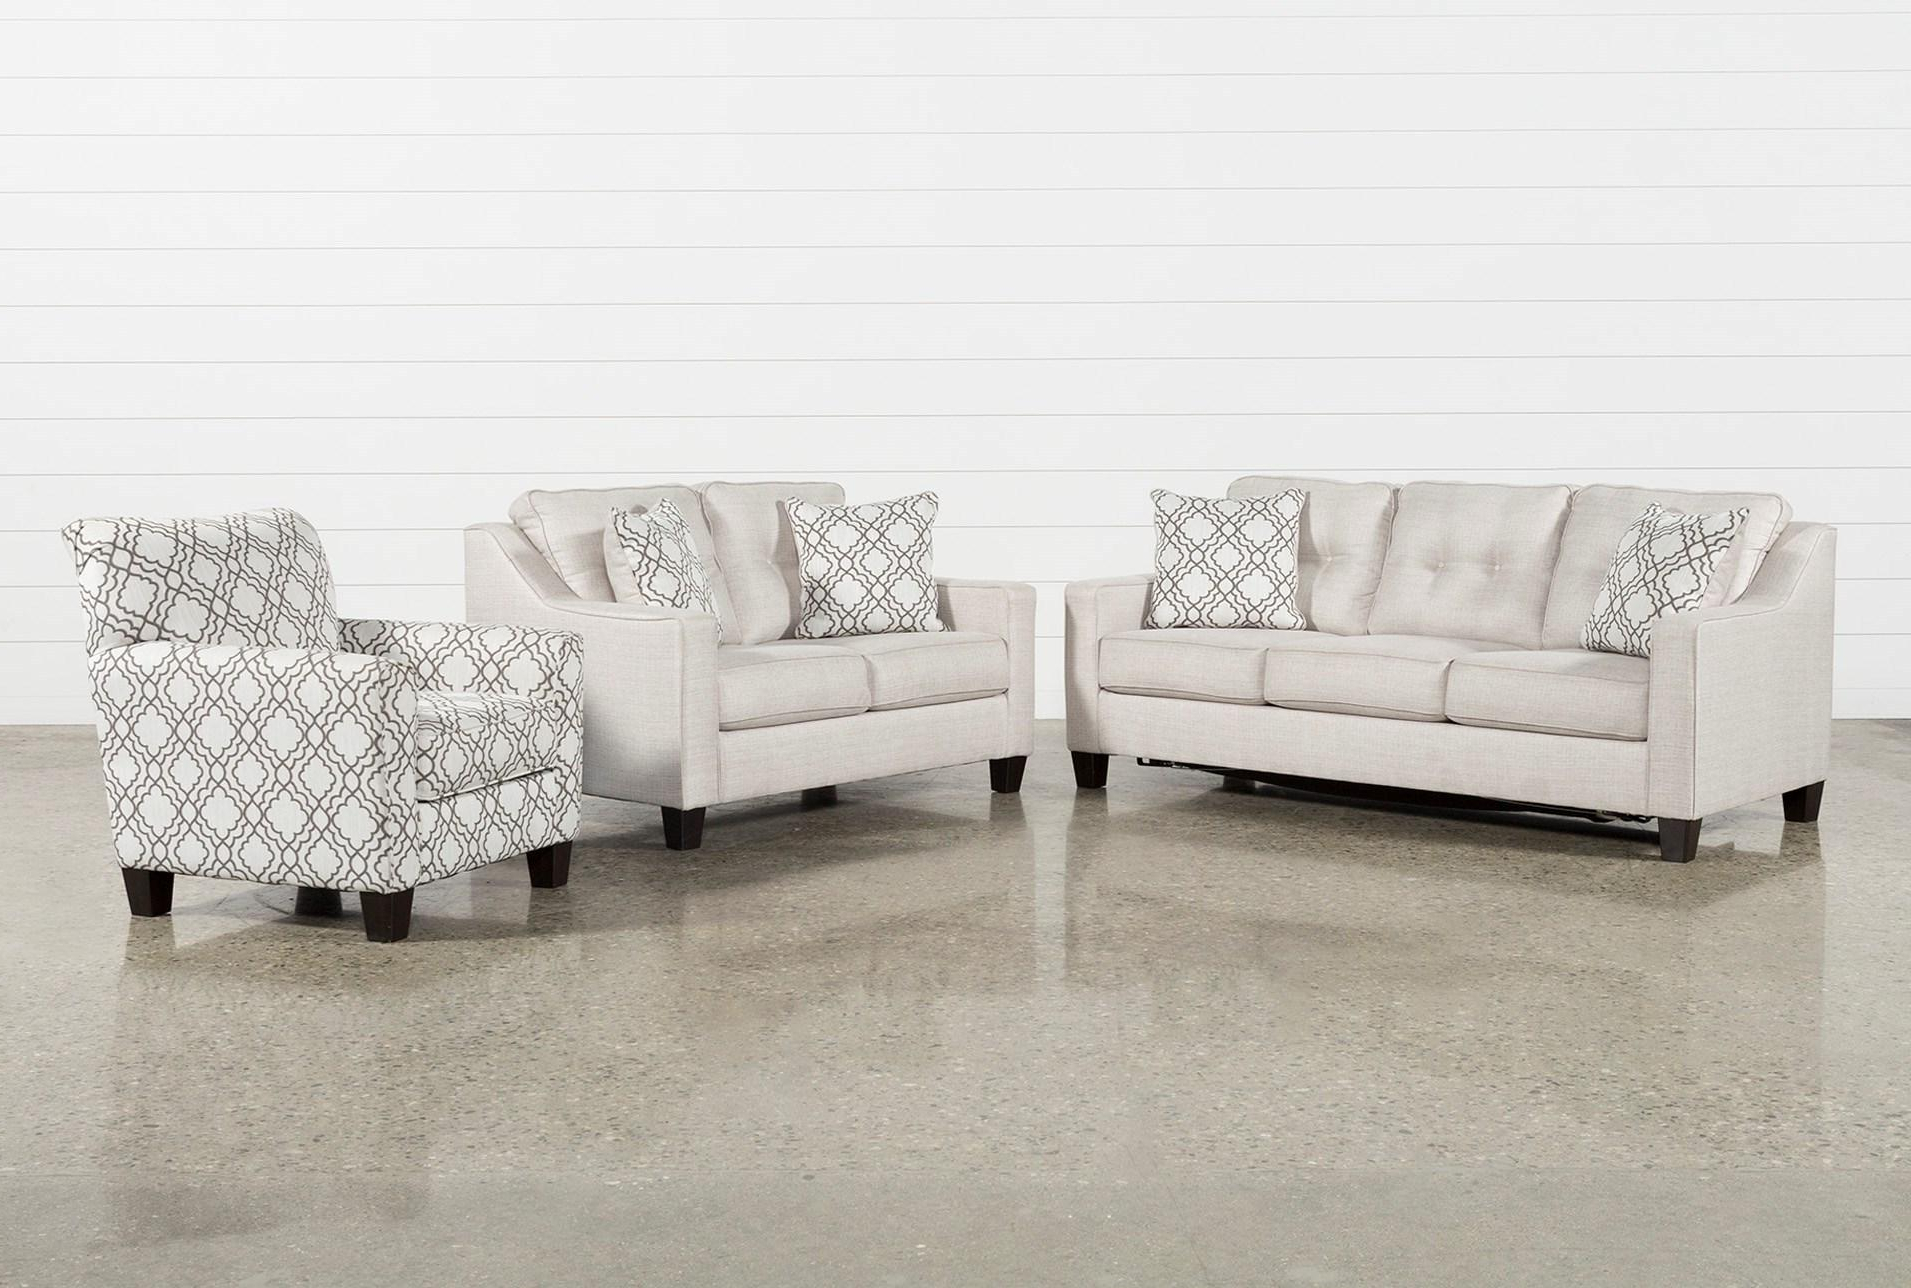 Mcdade Ash Sofa Chairs Throughout Well Known 3 Piece Living Room Set Casta Products Pinterest Sofa And Small (View 5 of 20)